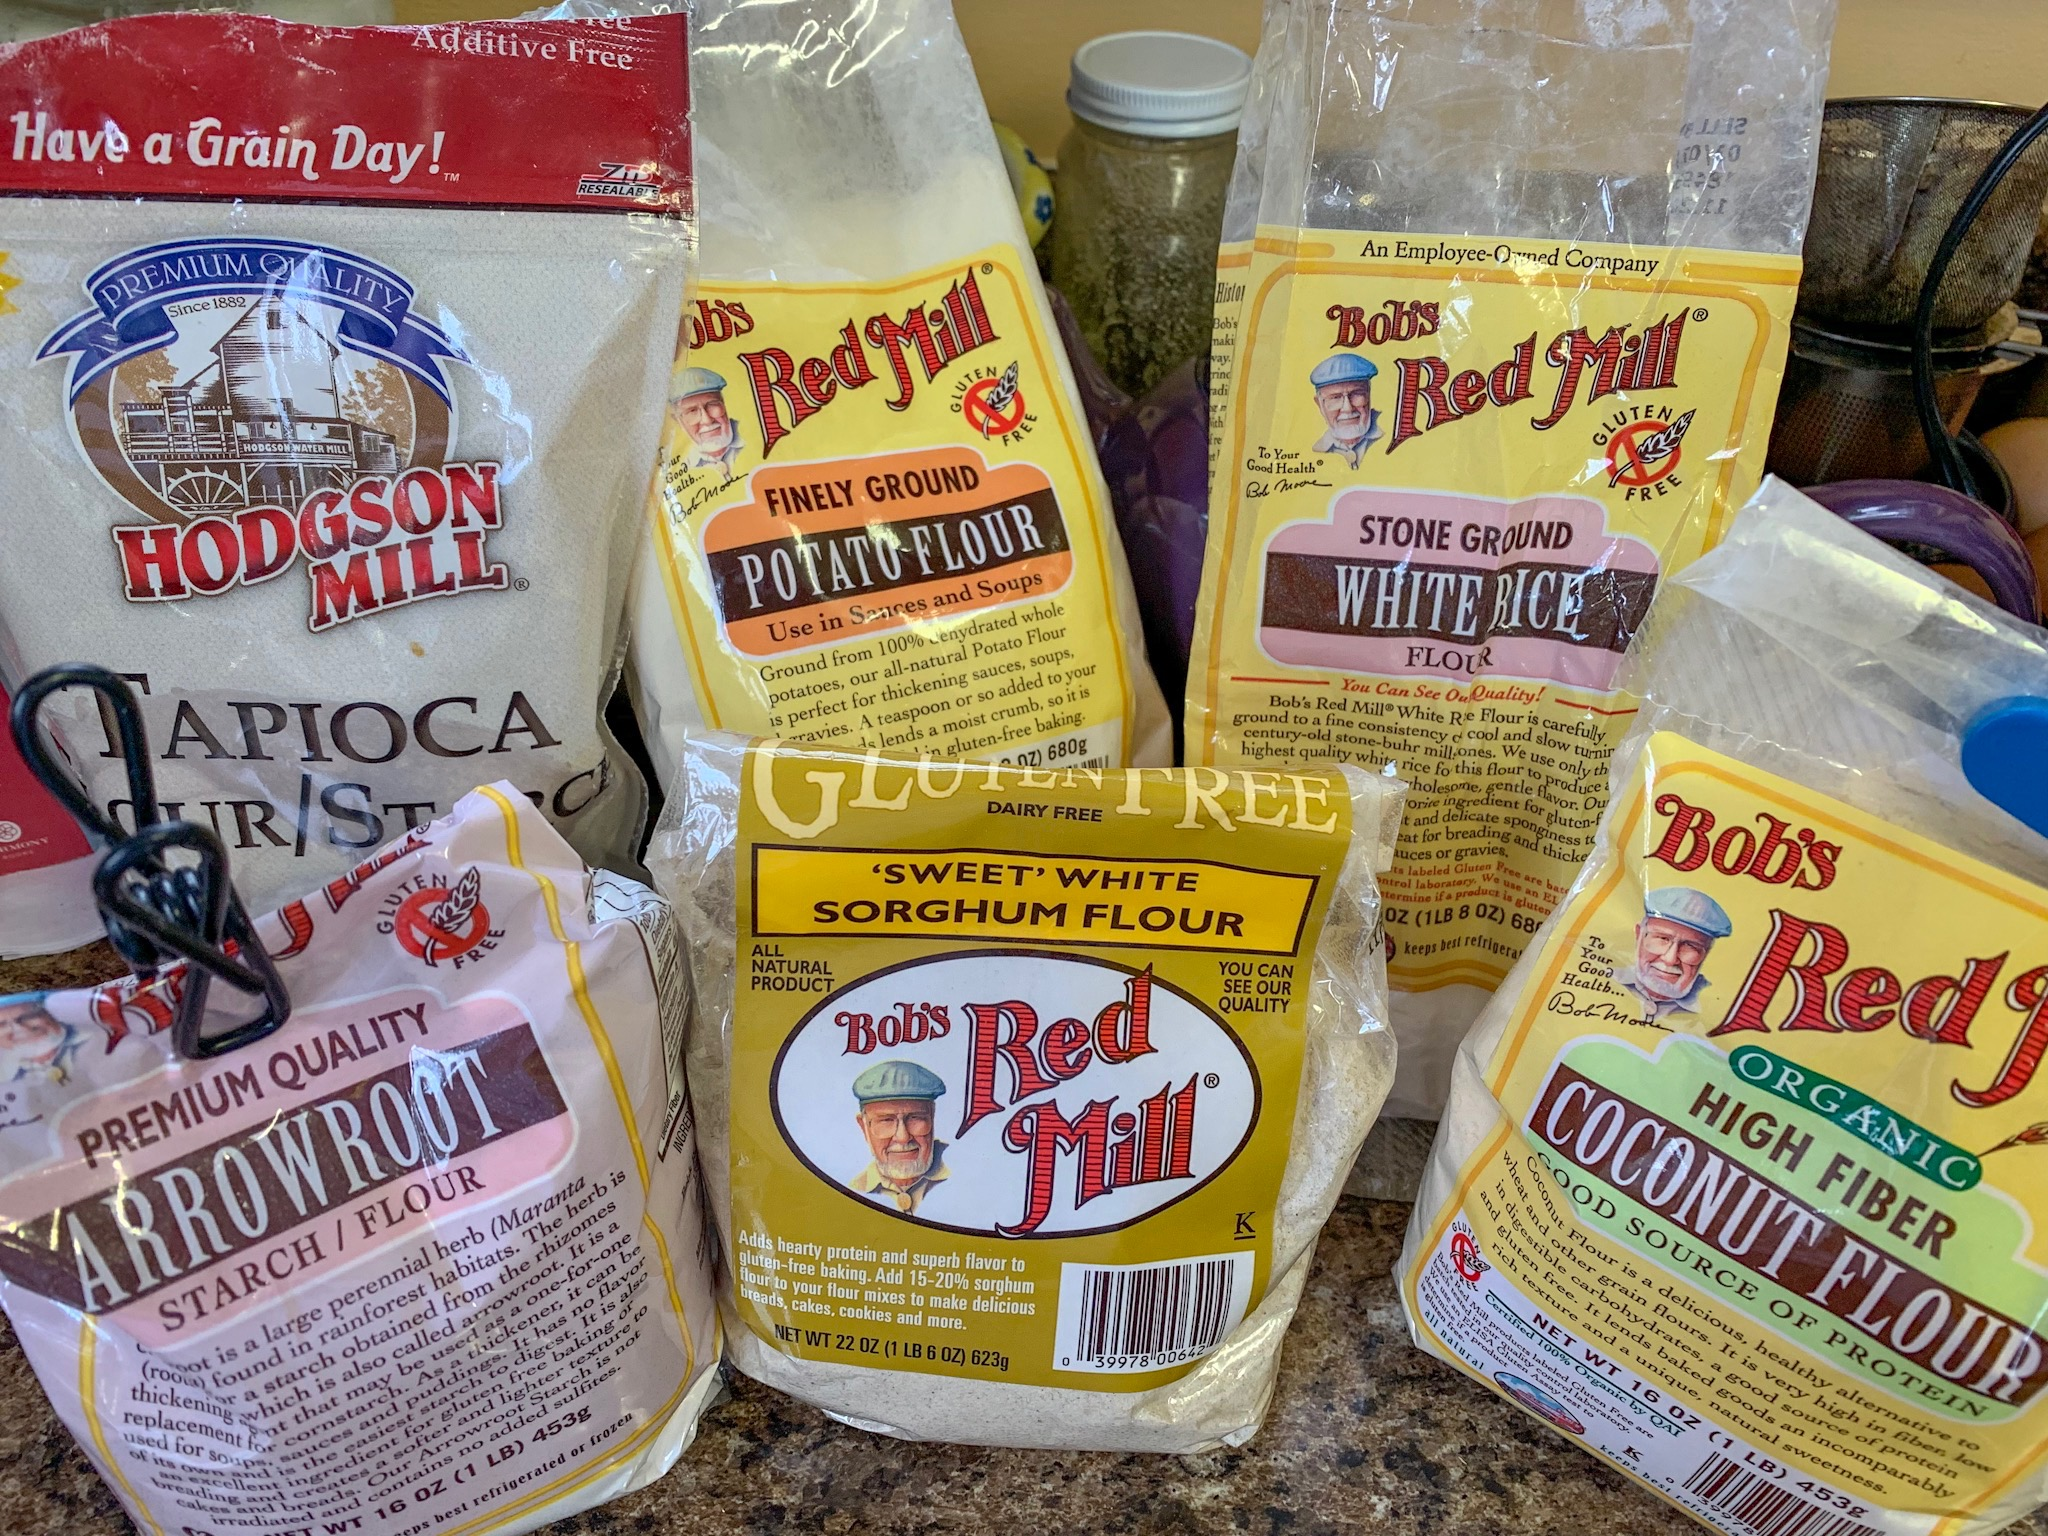 My assortment of gluten free flours. My favorite is white rice flour. Out of all of these, it acts normally. It really depends on what you are making as to the type of flour to use. If you are looking for a more low-carb option, then cream soups are not for you. Stick with the broth and you will still have a yummy soup.